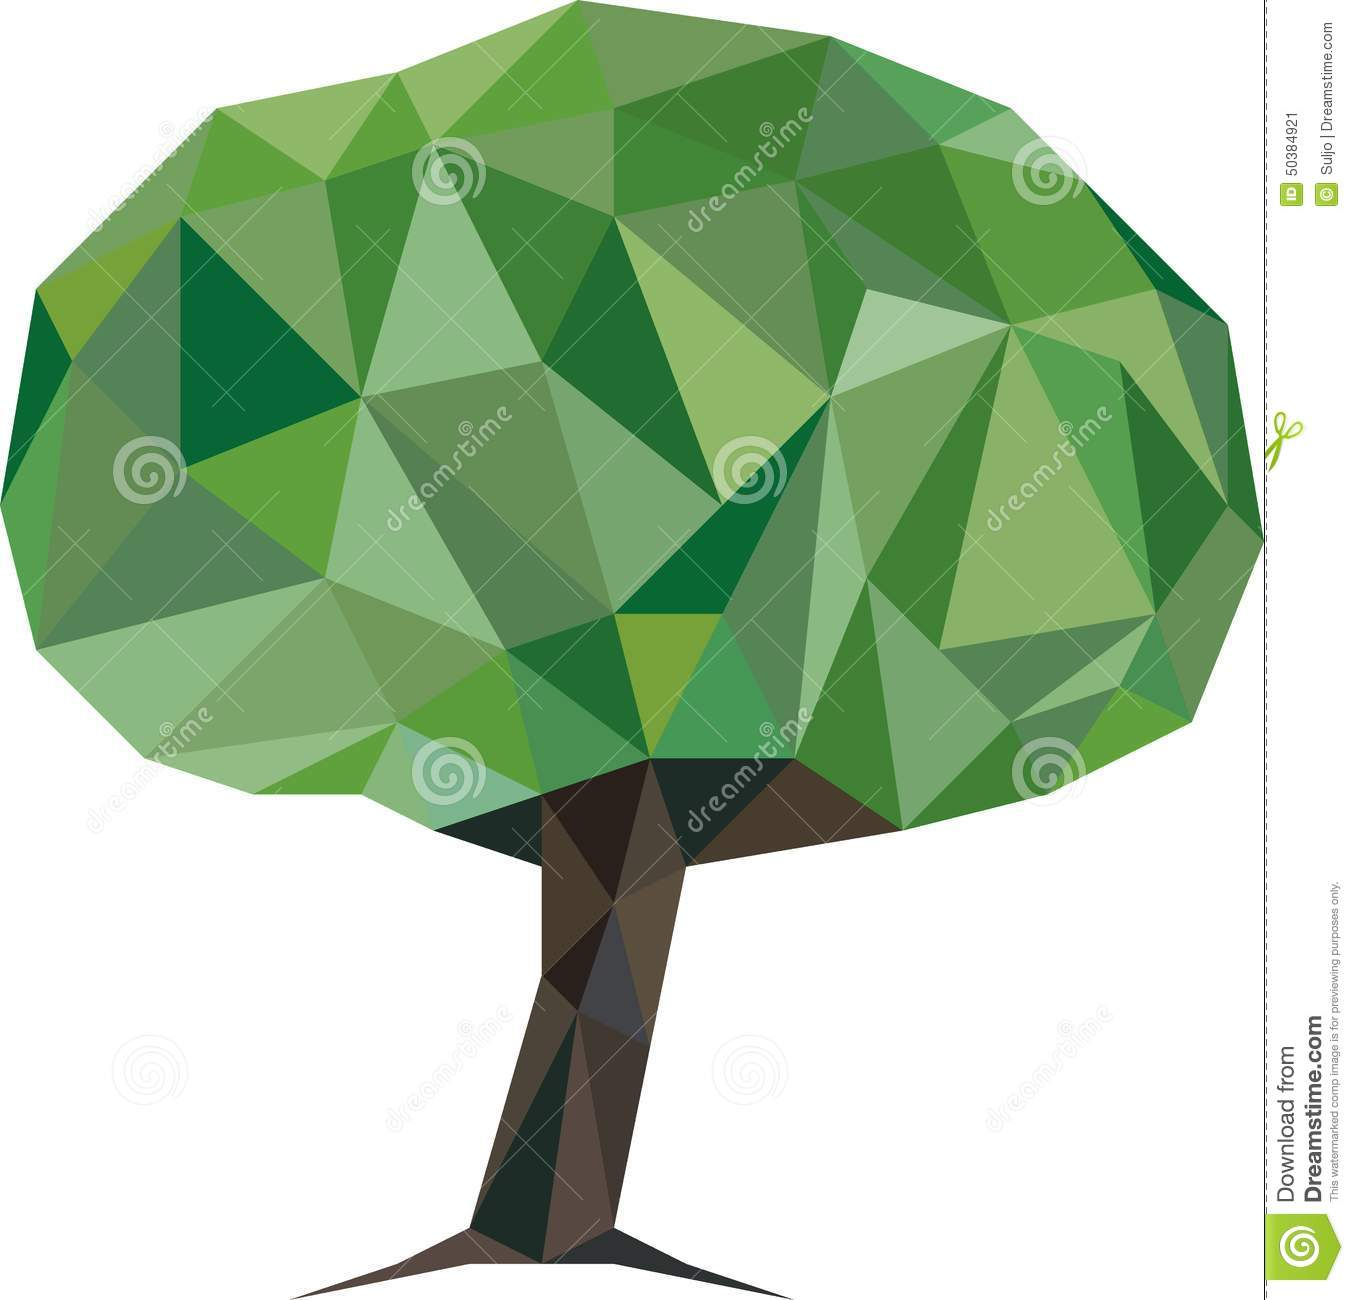 Low Poly Tree Stock Illustration - Image: 50384921